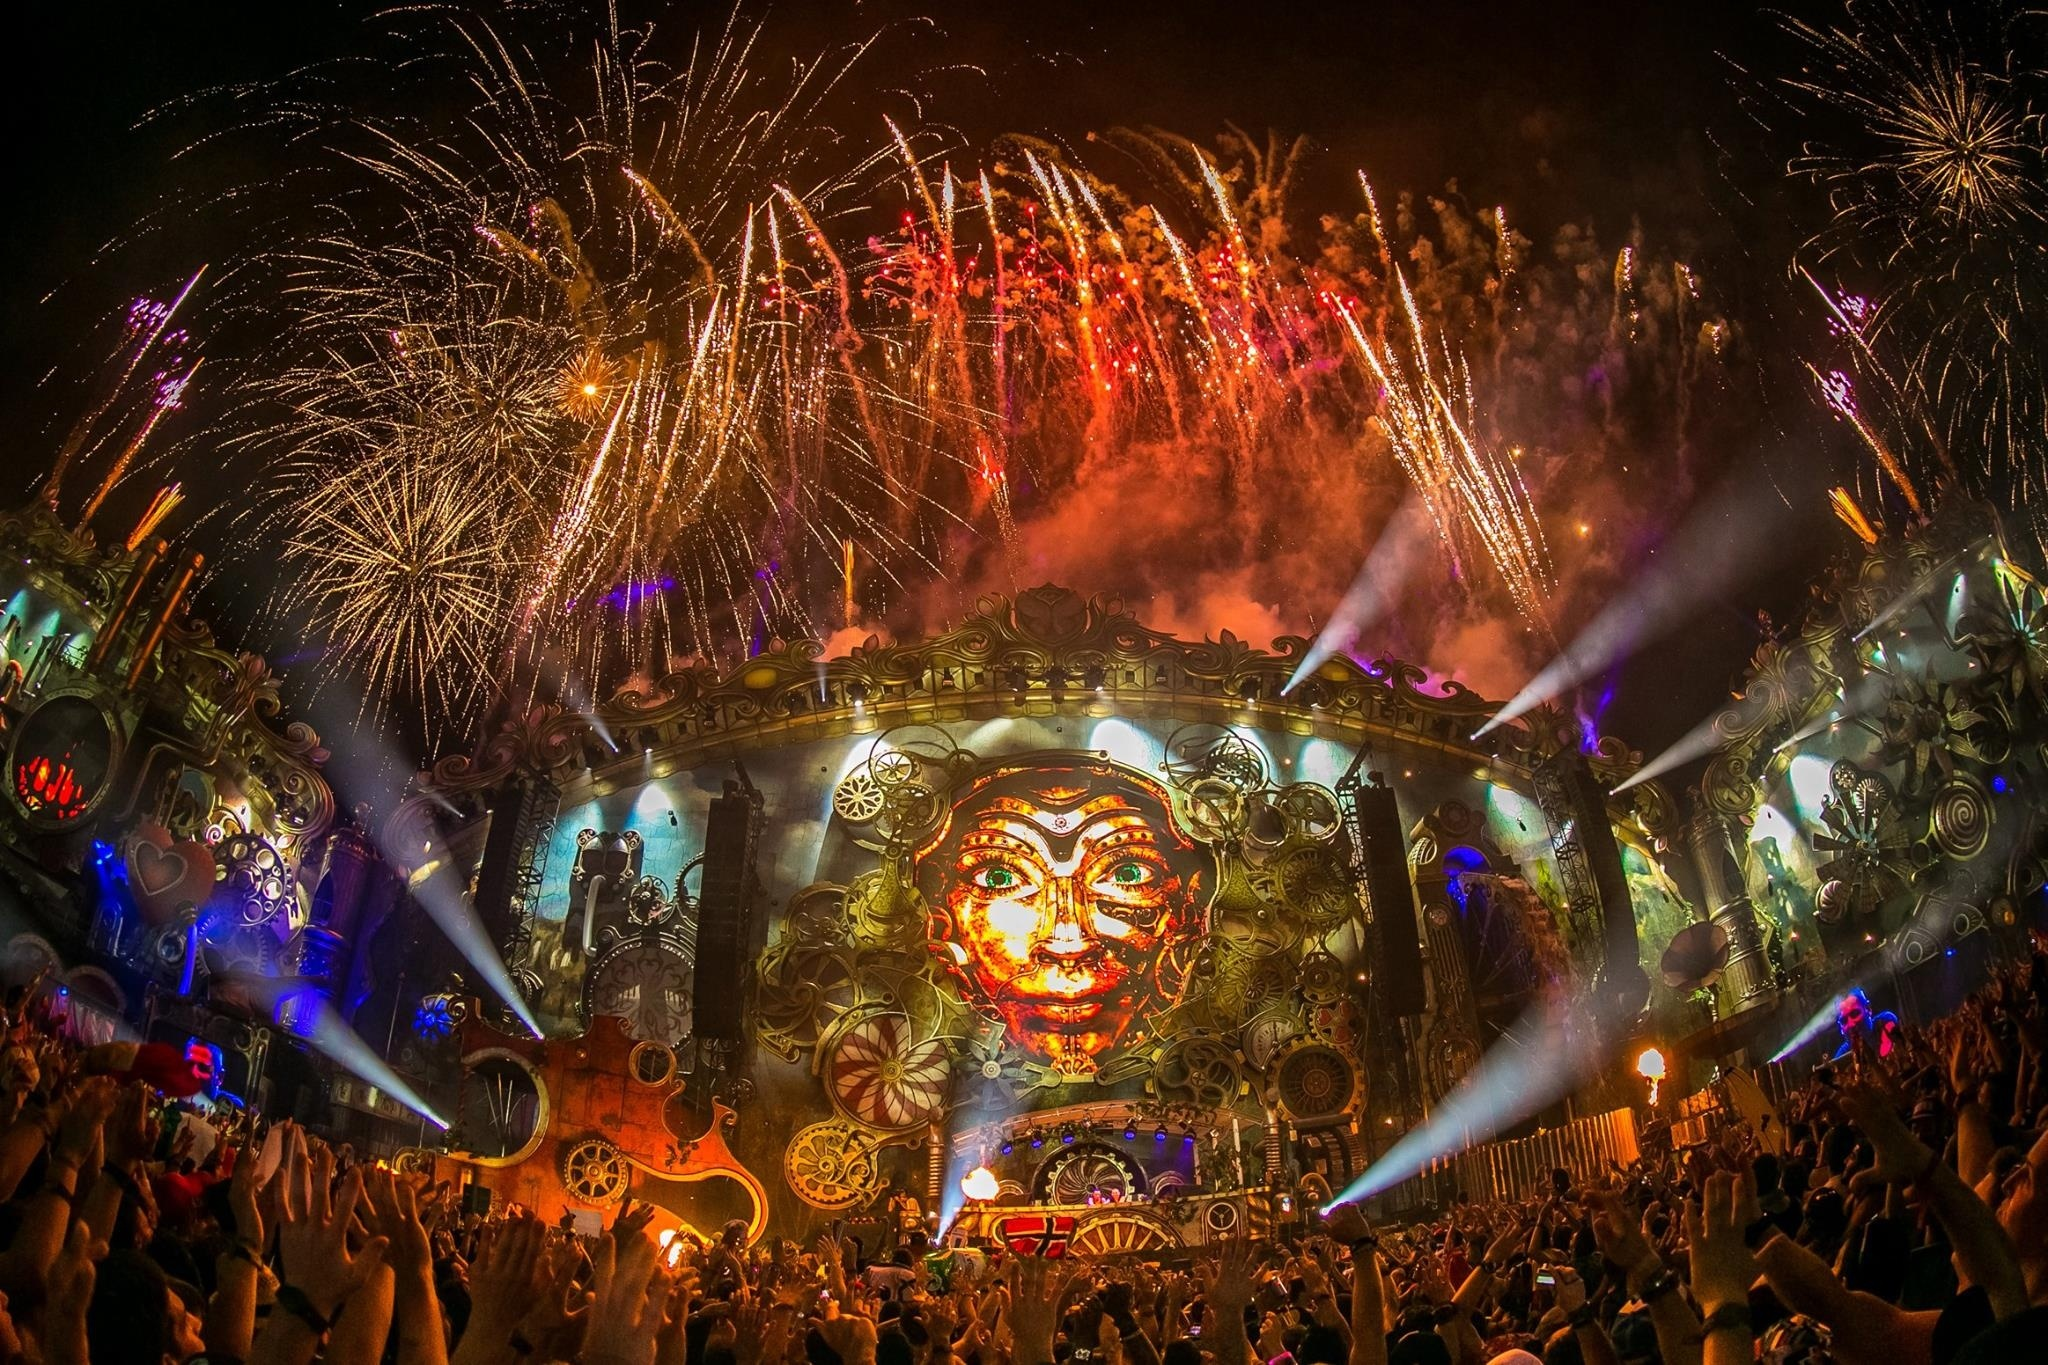 The Top 10 Most Played Songs at Tomorrowland 2014 - VICE